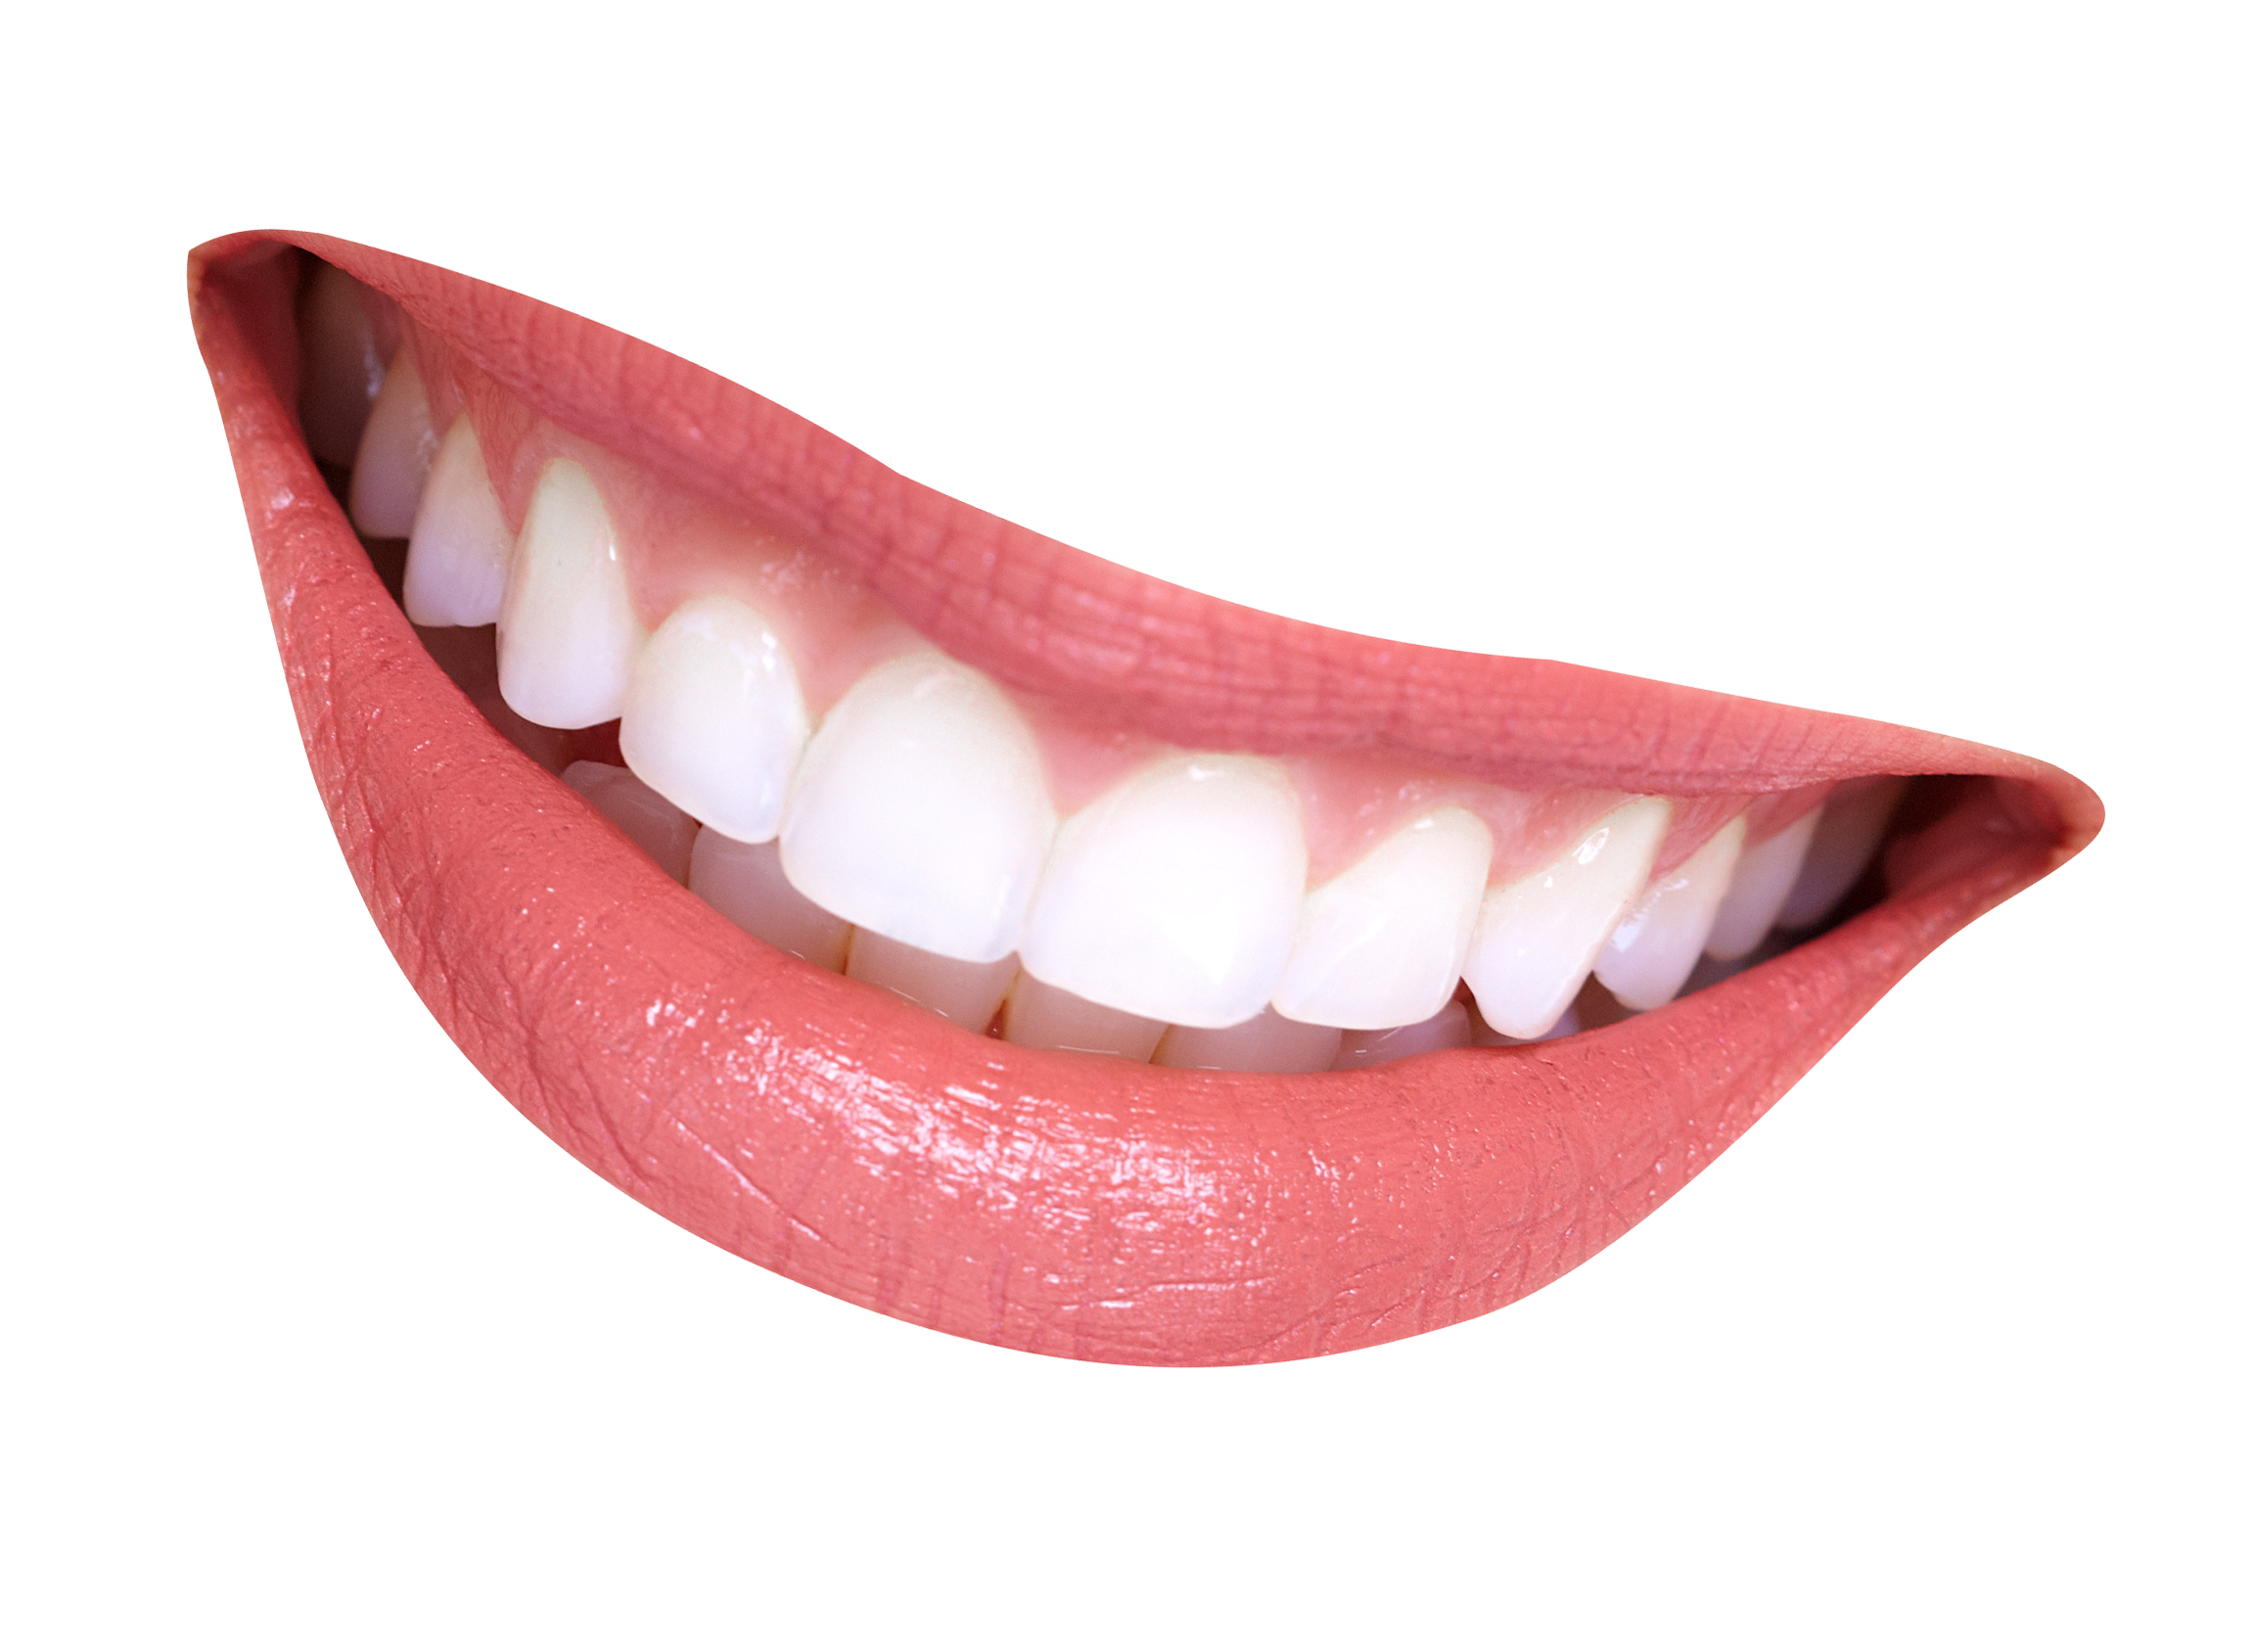 Smile Mouth PNG Free Download image #46509